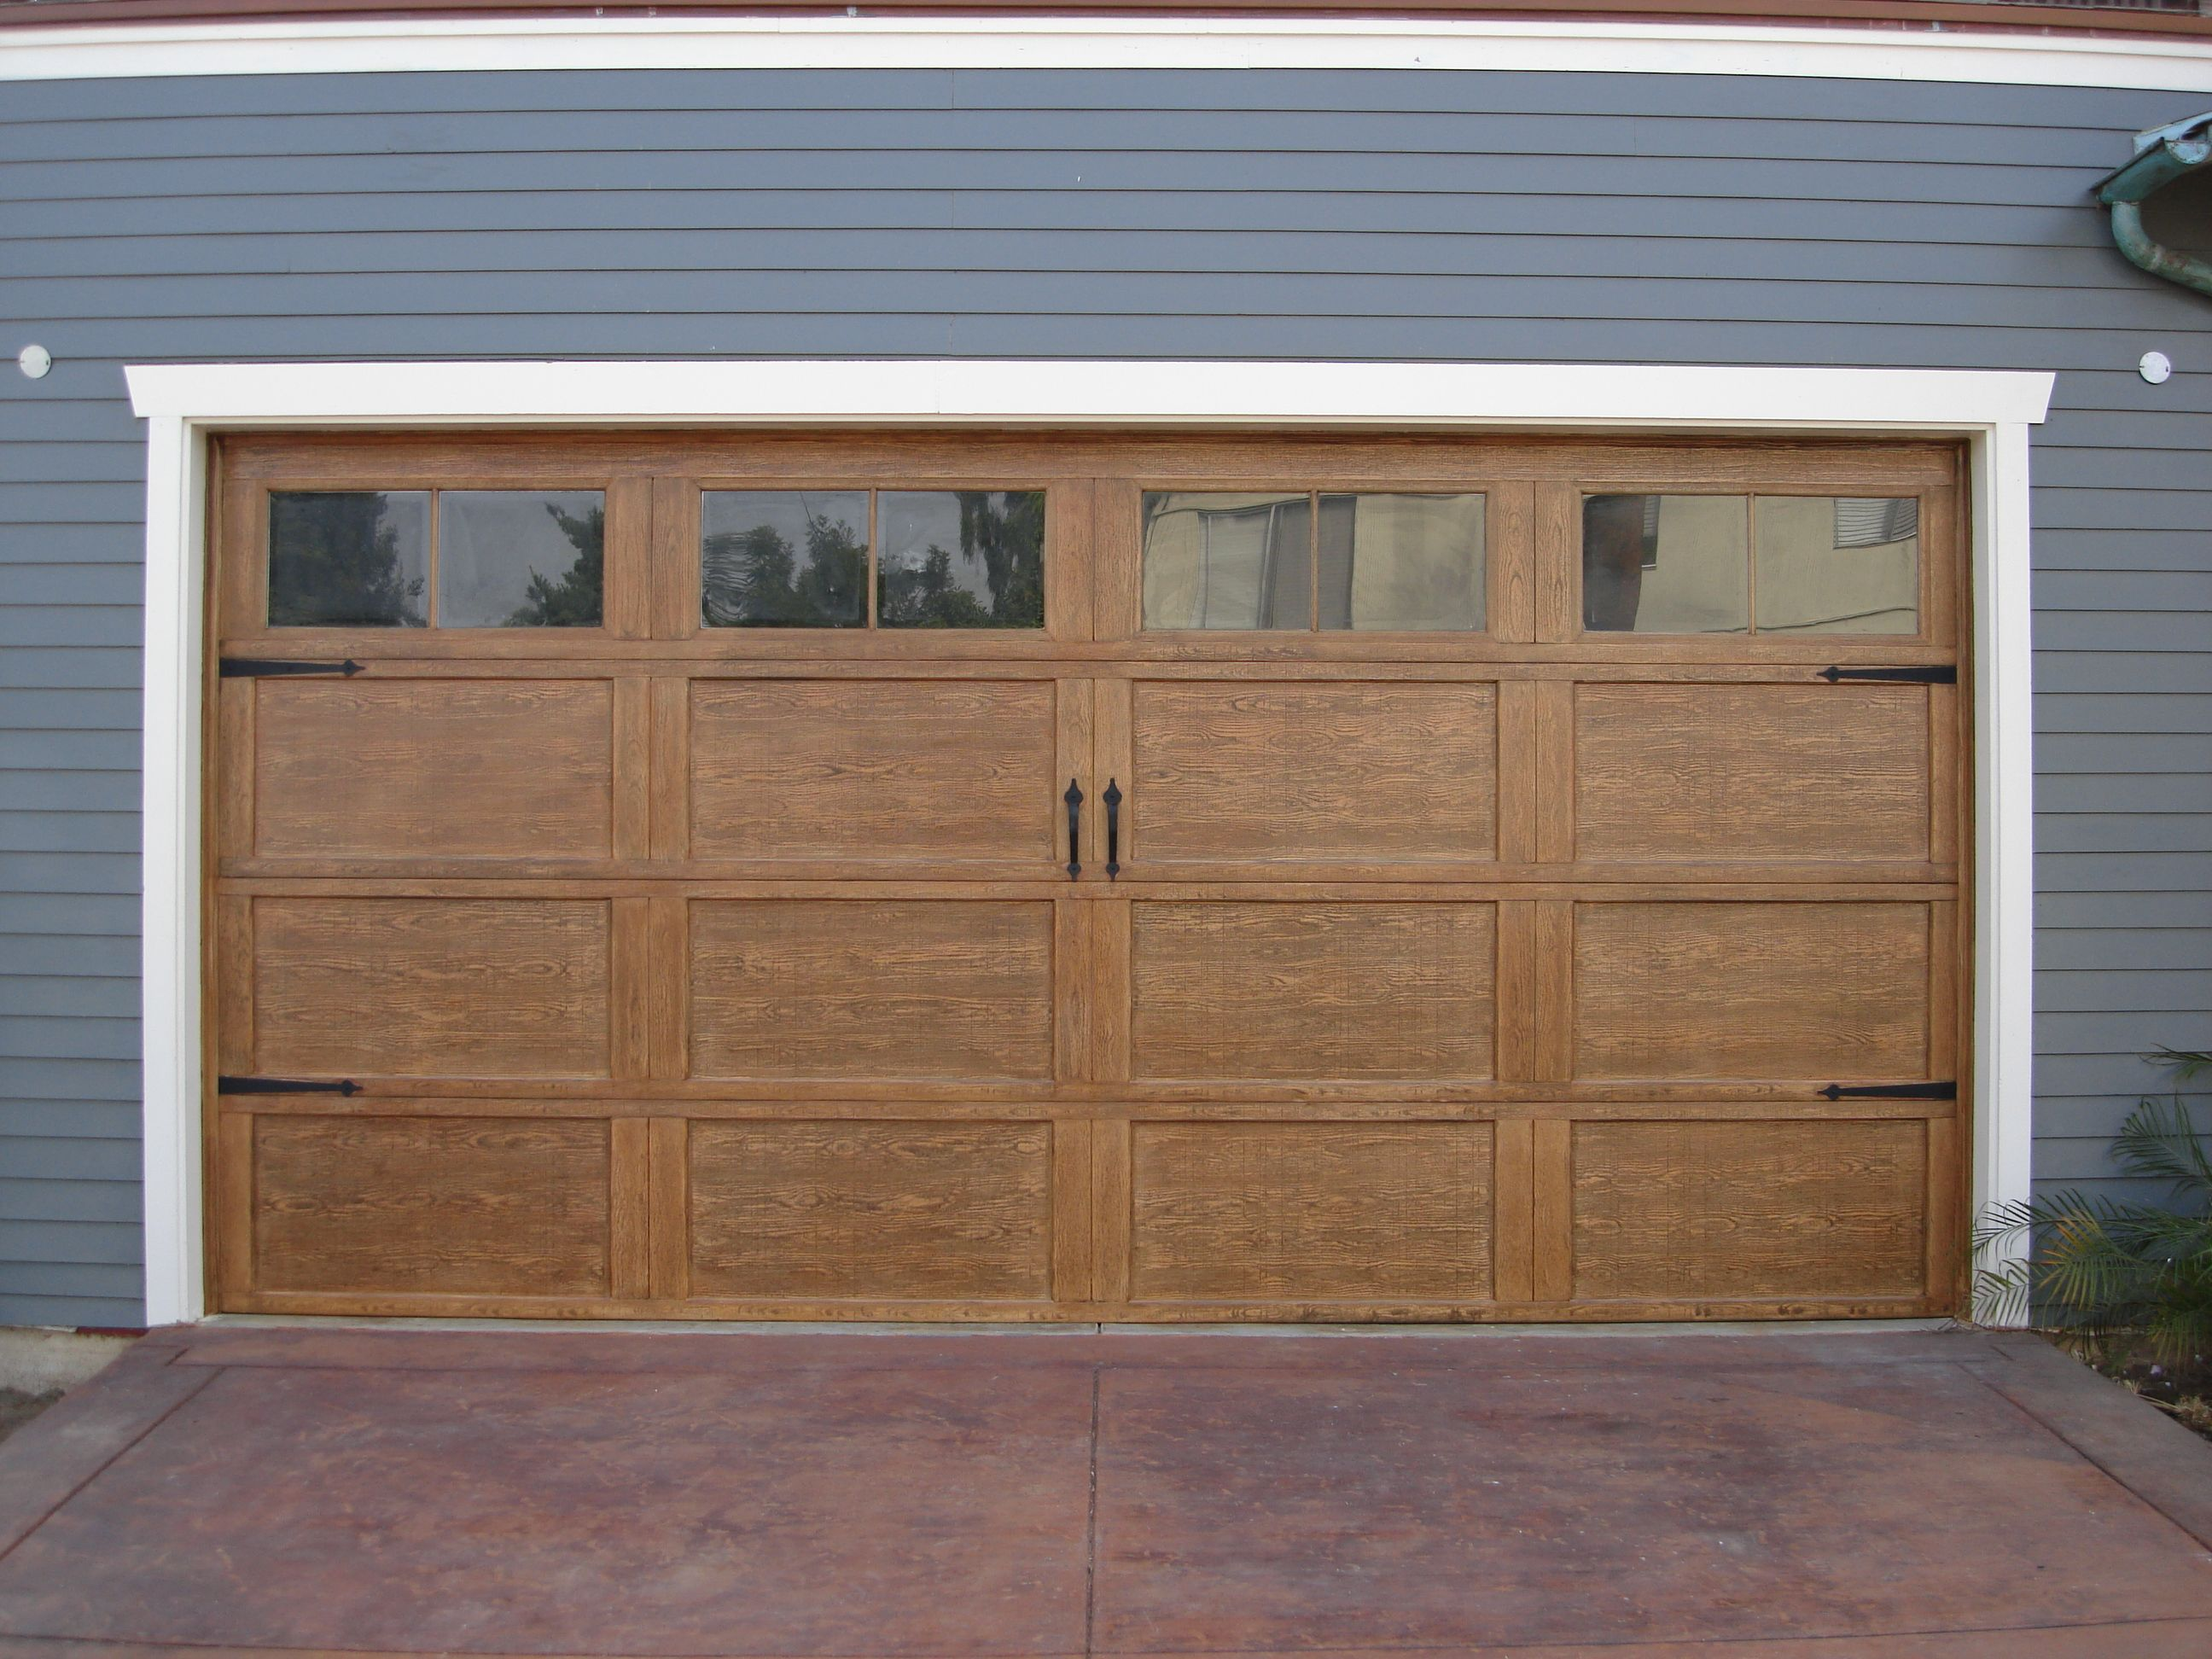 Glass garage door interior - Garage Door Trim